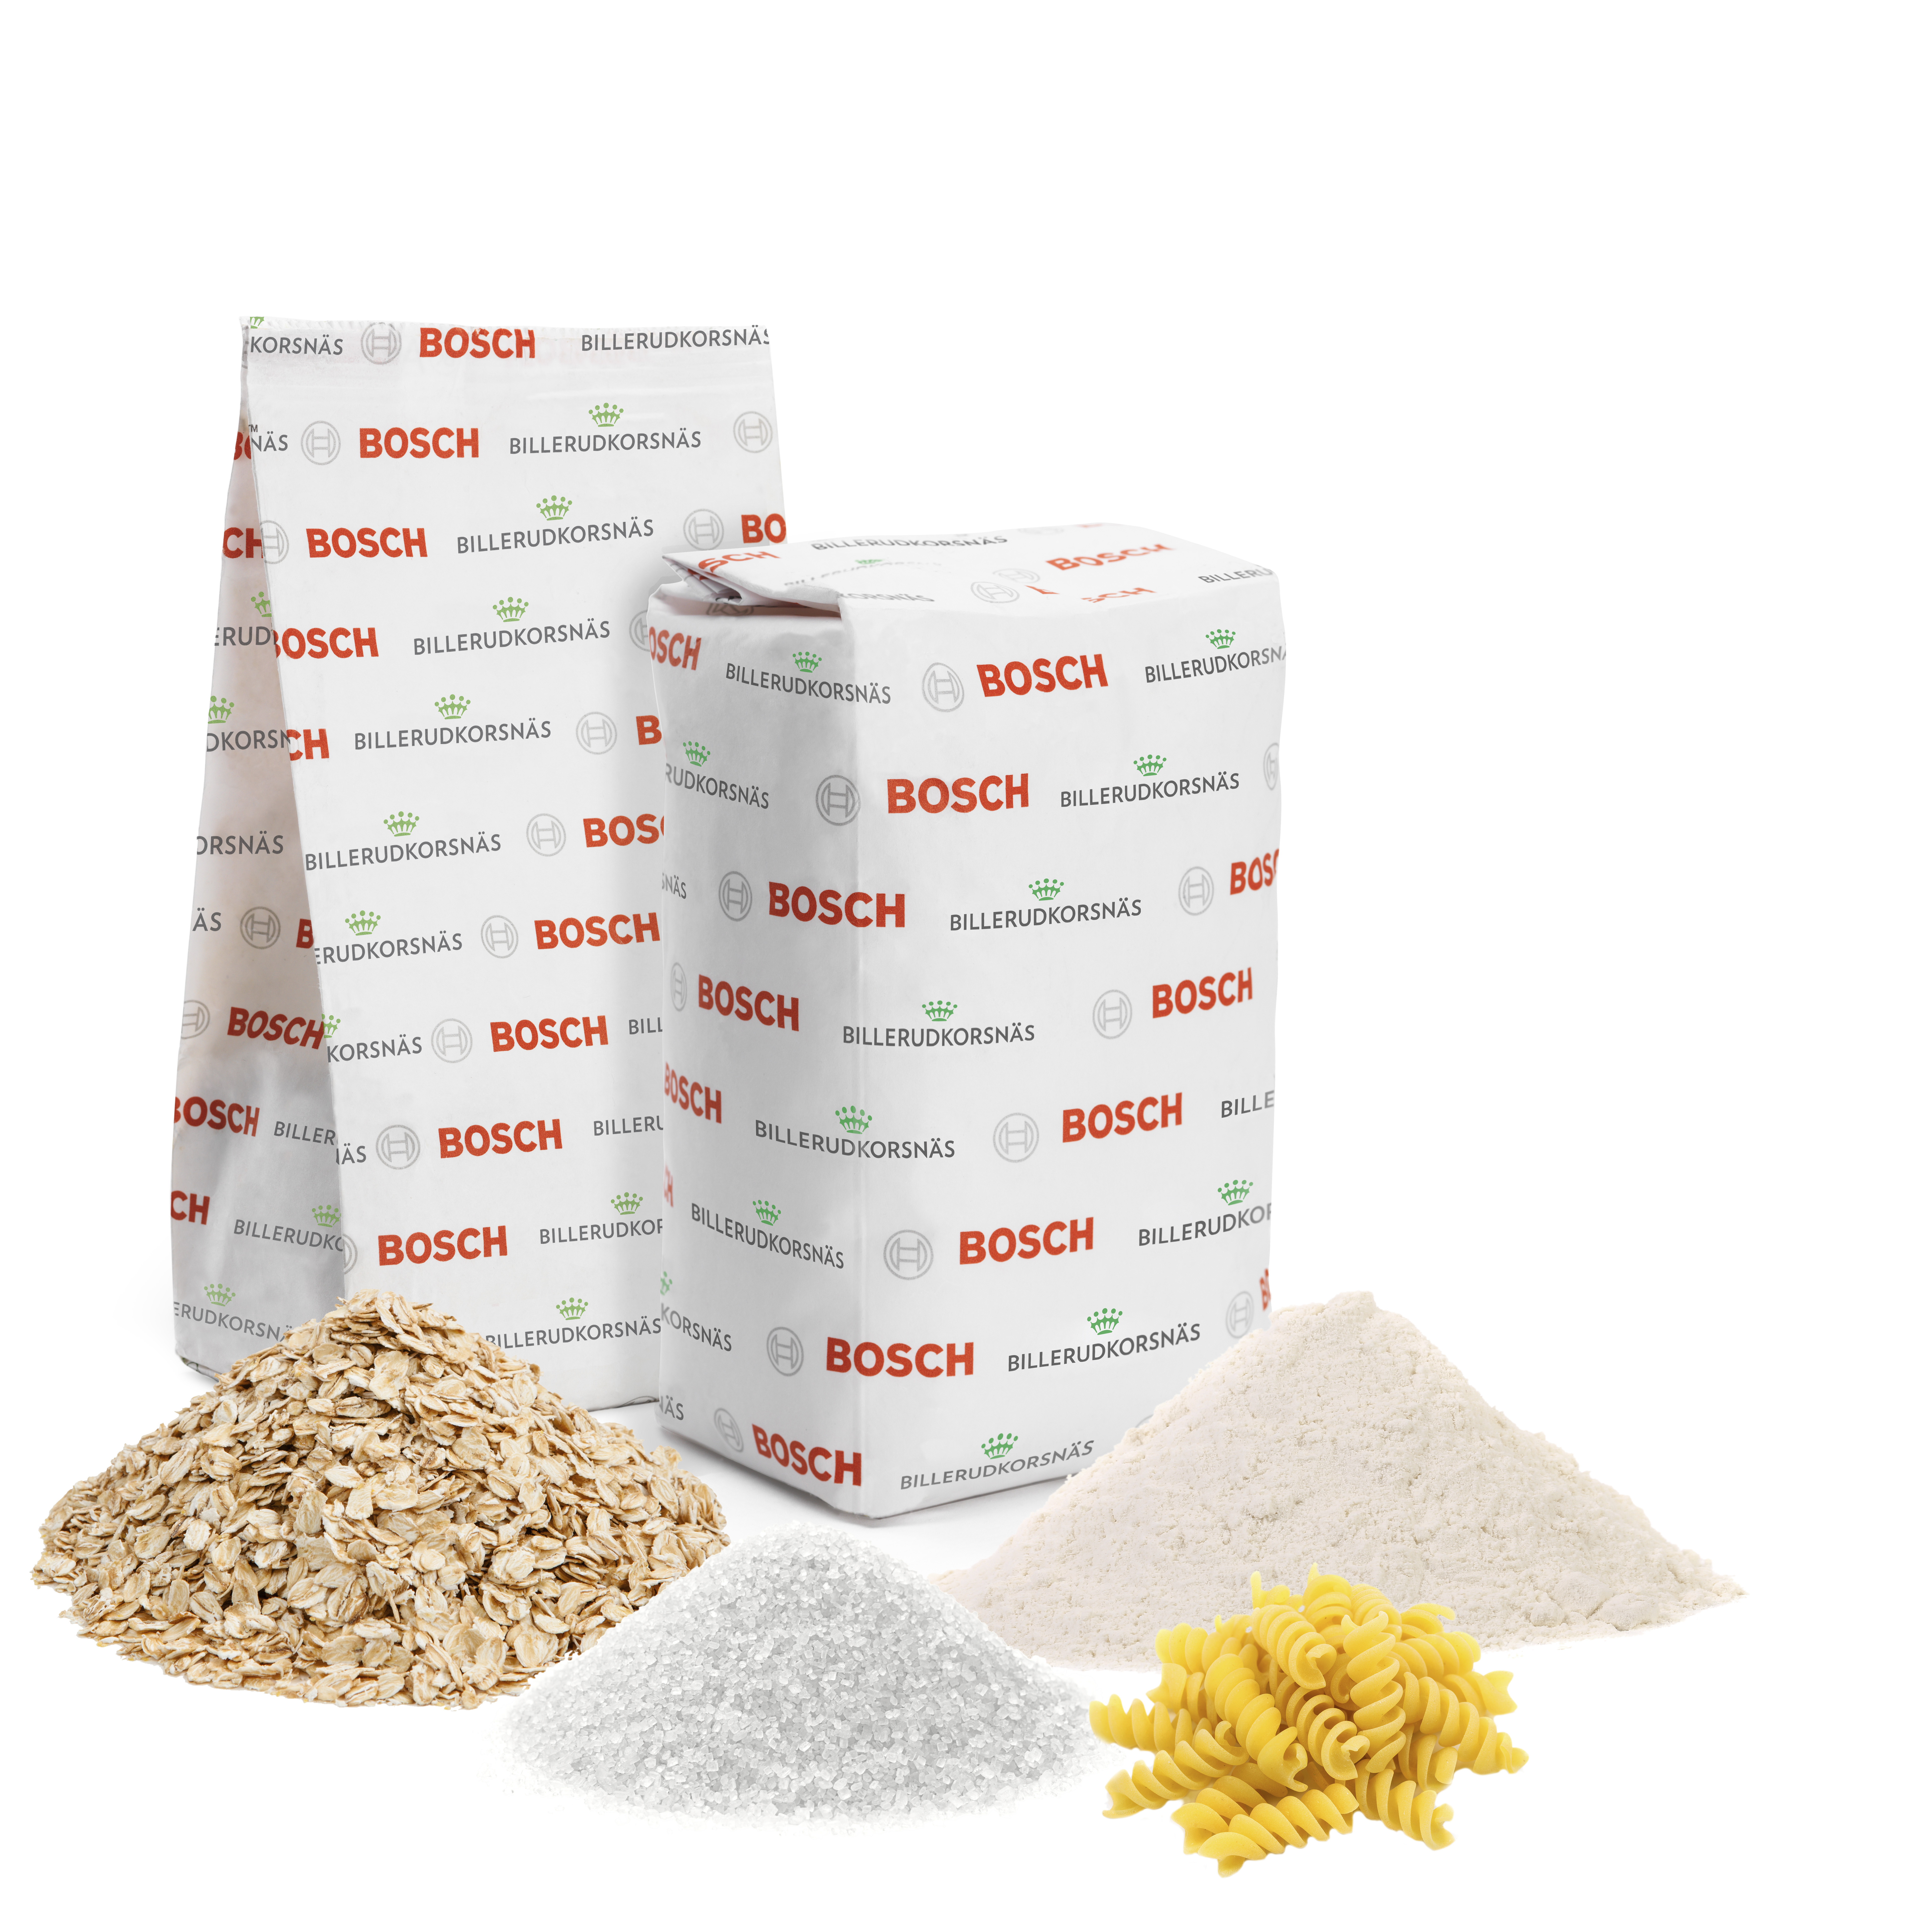 First mono-material paper bags produced on continuous-motion VFFS bagger and mandrel wheel machine